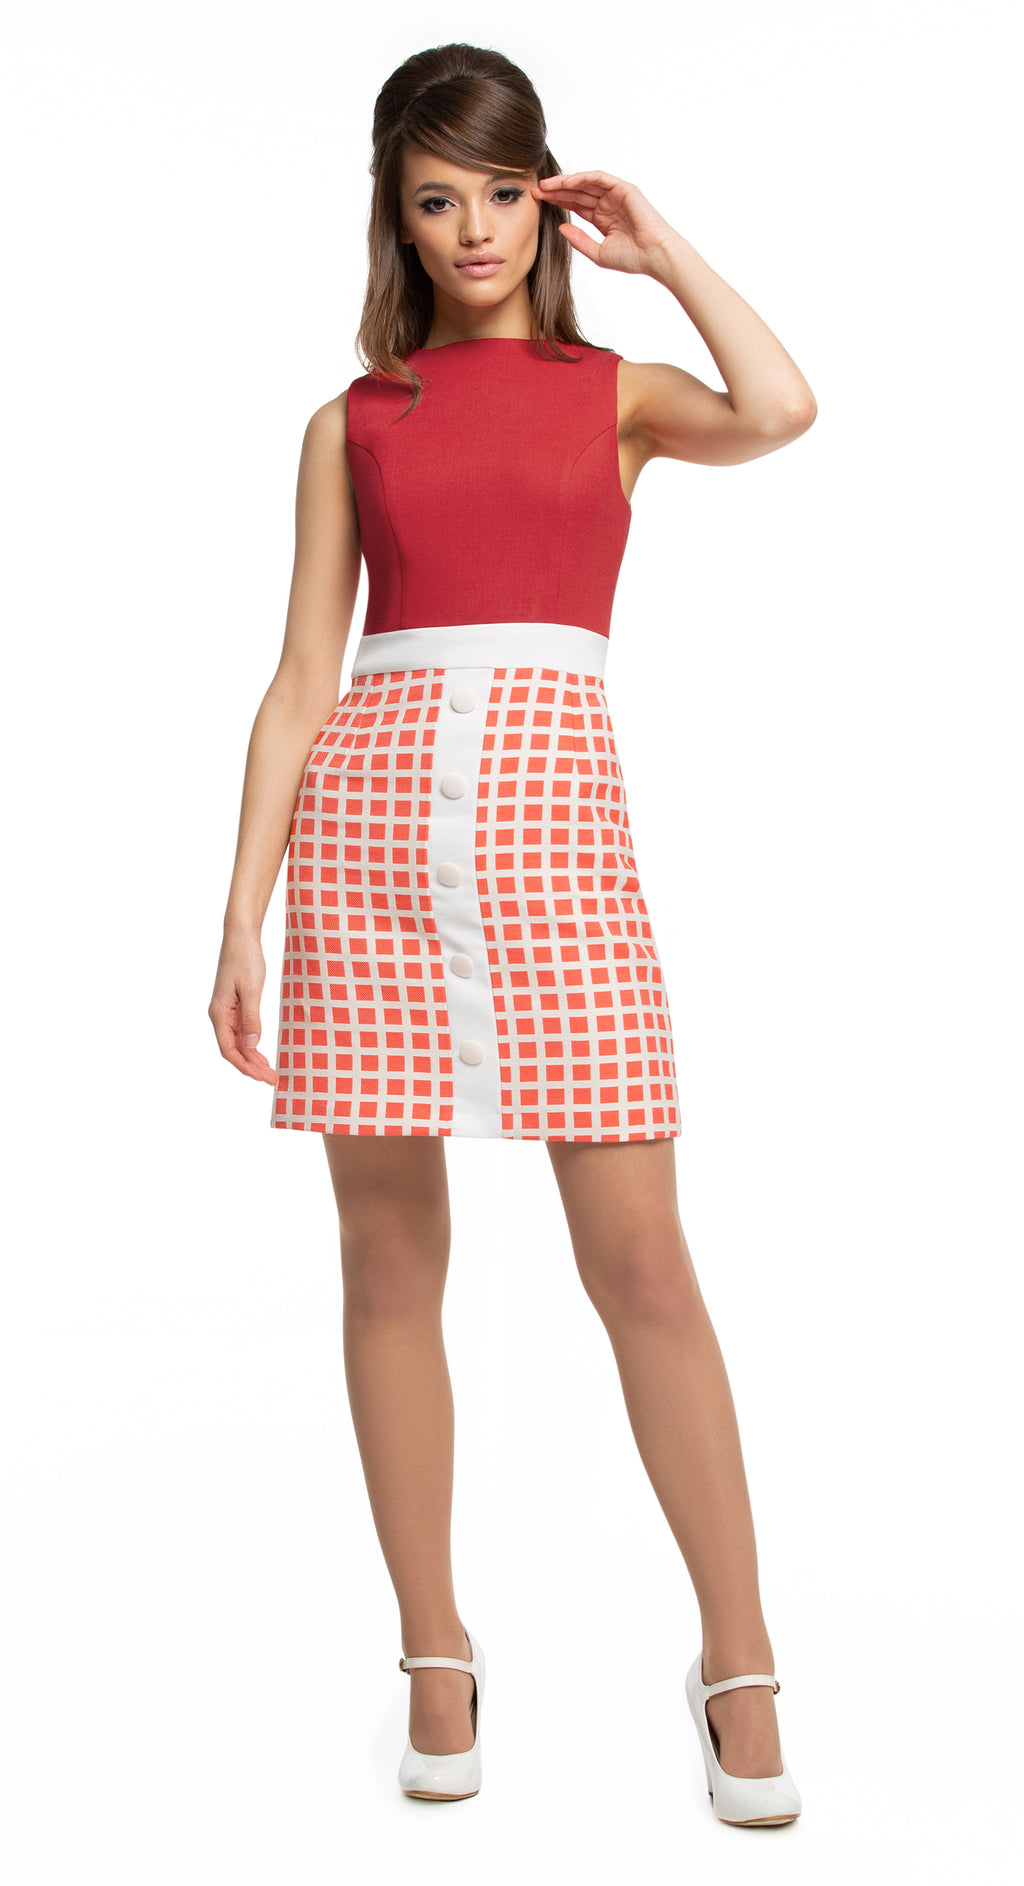 This fitted sleeveless Spring piece, is made of a muted red/light light cream or muted black/light cream, geometric pattern French weave. A fitted bodice and contrasting light cream waist to hem divide, detailed by a five button finish create a perfect at-work or at-play Spring look.  Pairs perfectly with the geometric pattern coat to complete a high fashion set.  Choose bespoke if preferring short sleeves.